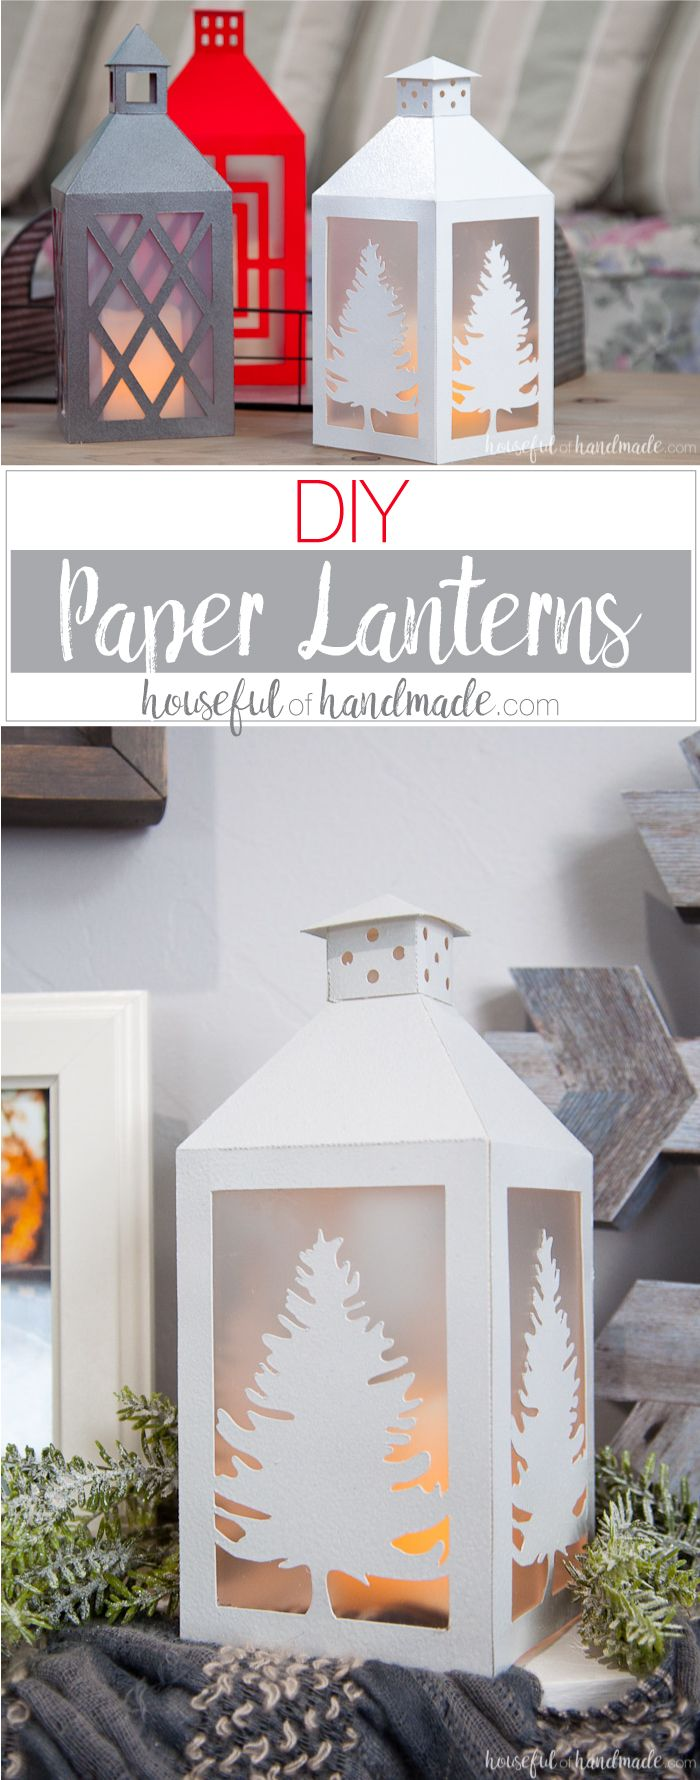 DIY Paper Lanterns Decor | Pinterest | Lanterns decor, Diy paper ...